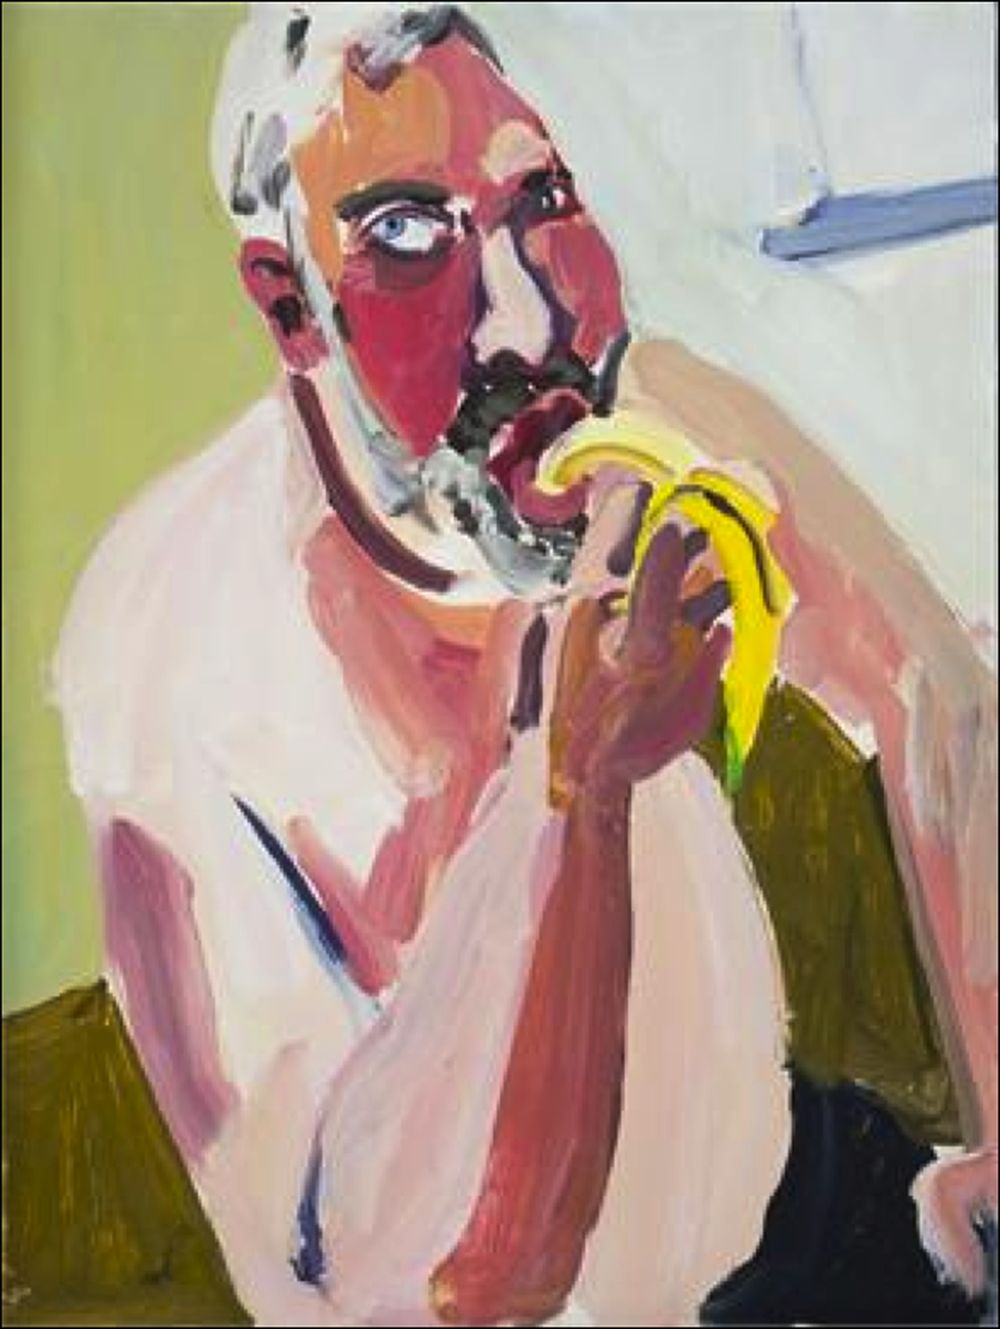 Chantal_Joffe Dan Eating a Banana-does